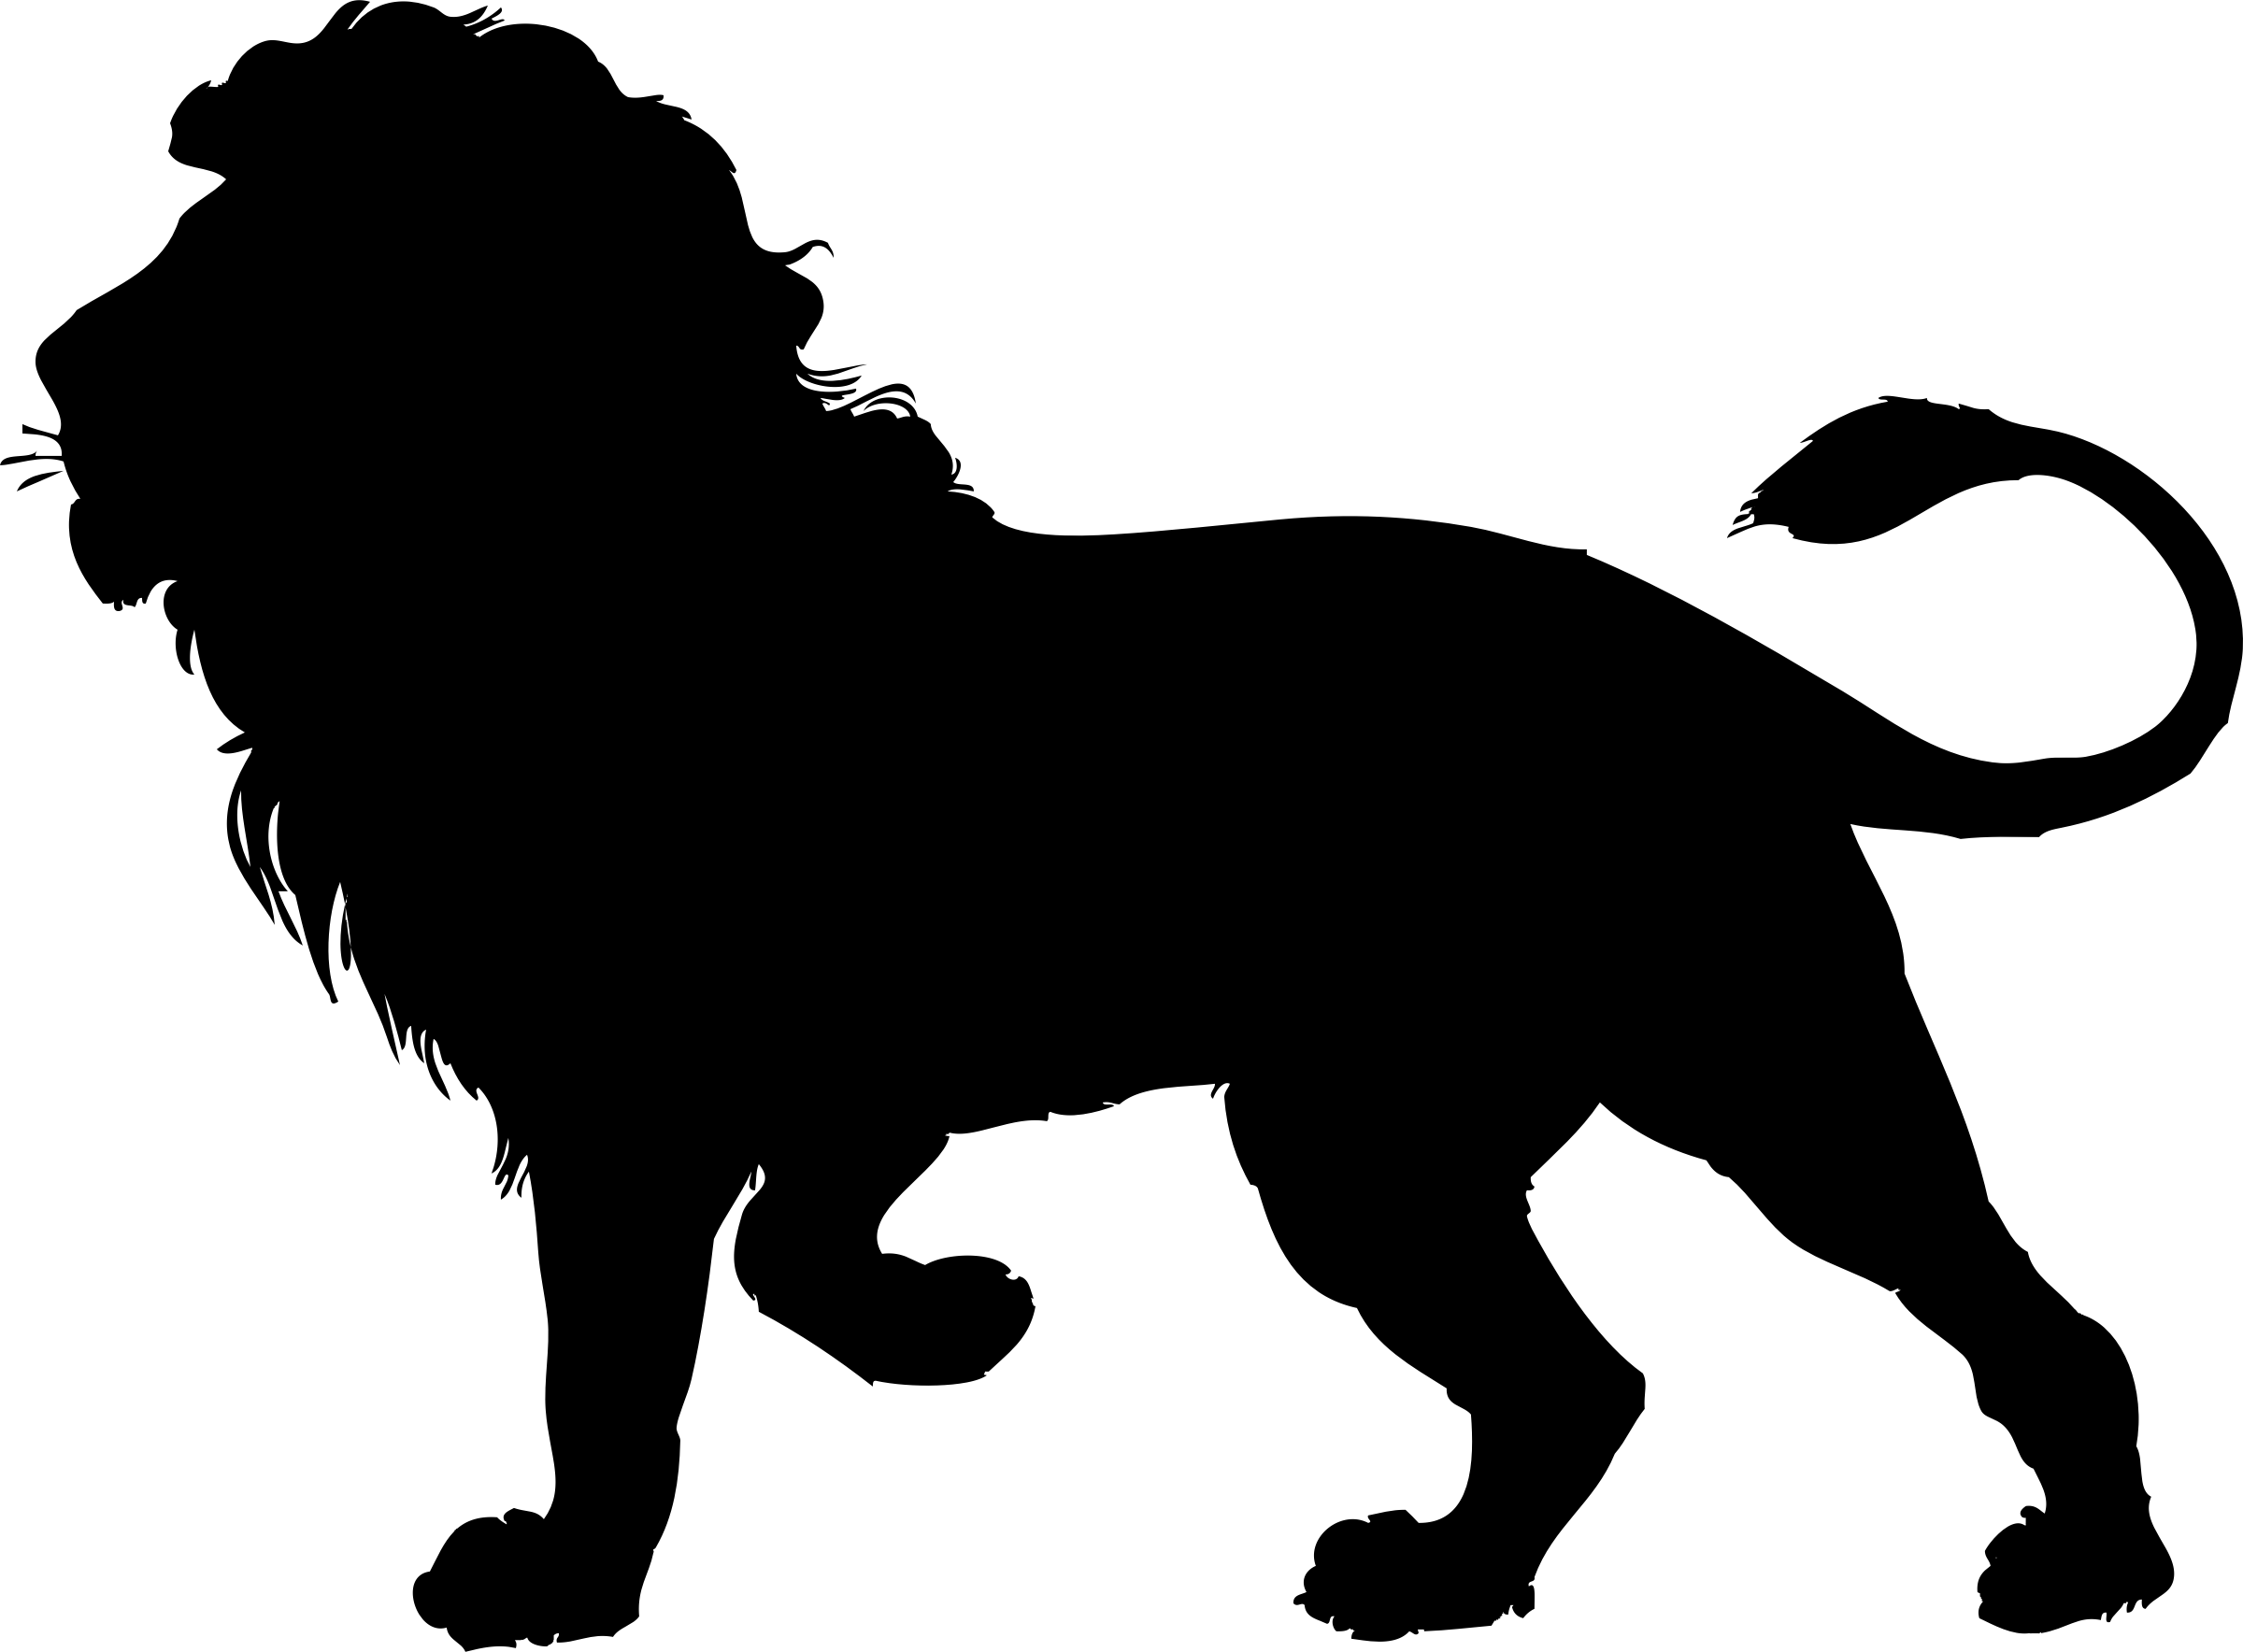 Roaring Lion Clip Art Black And White Free Black Lion Cliparts Download Free Clip Art Free